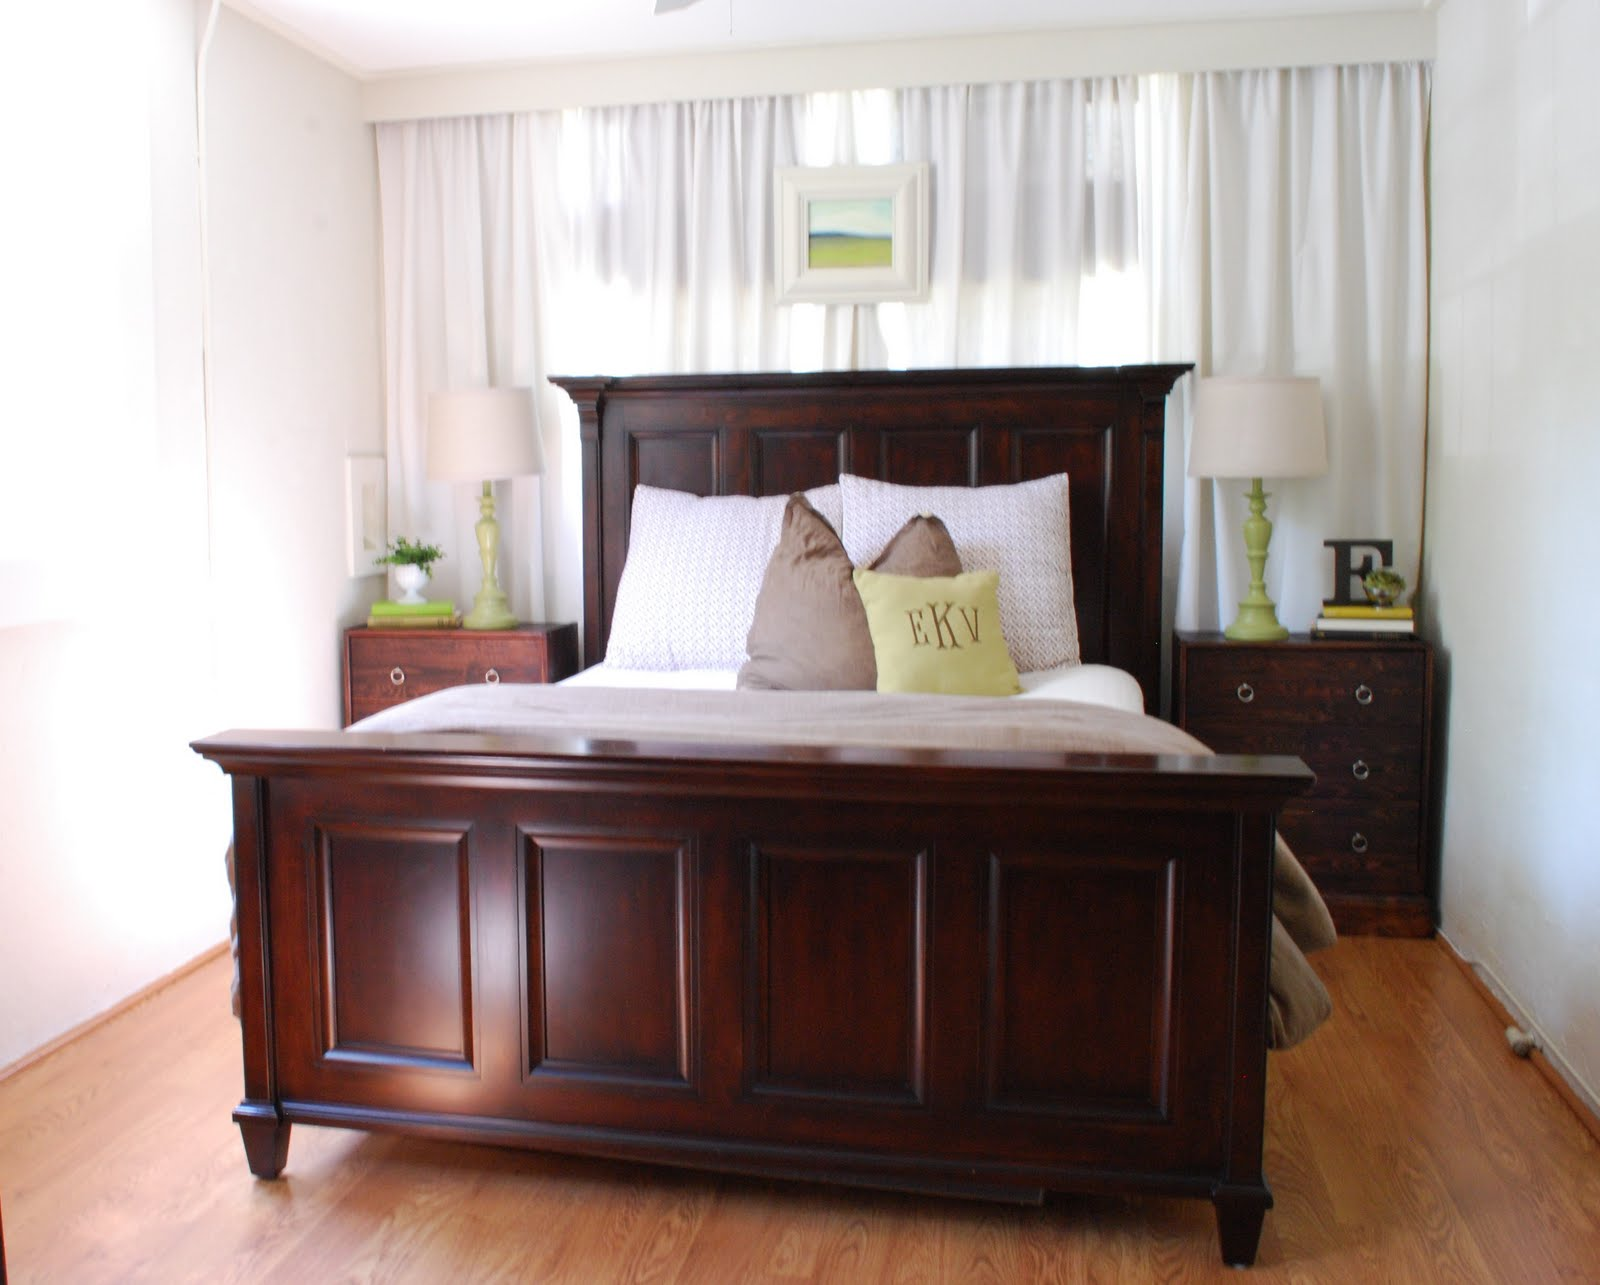 This & That: Master Bedroom Wall O' Curtains